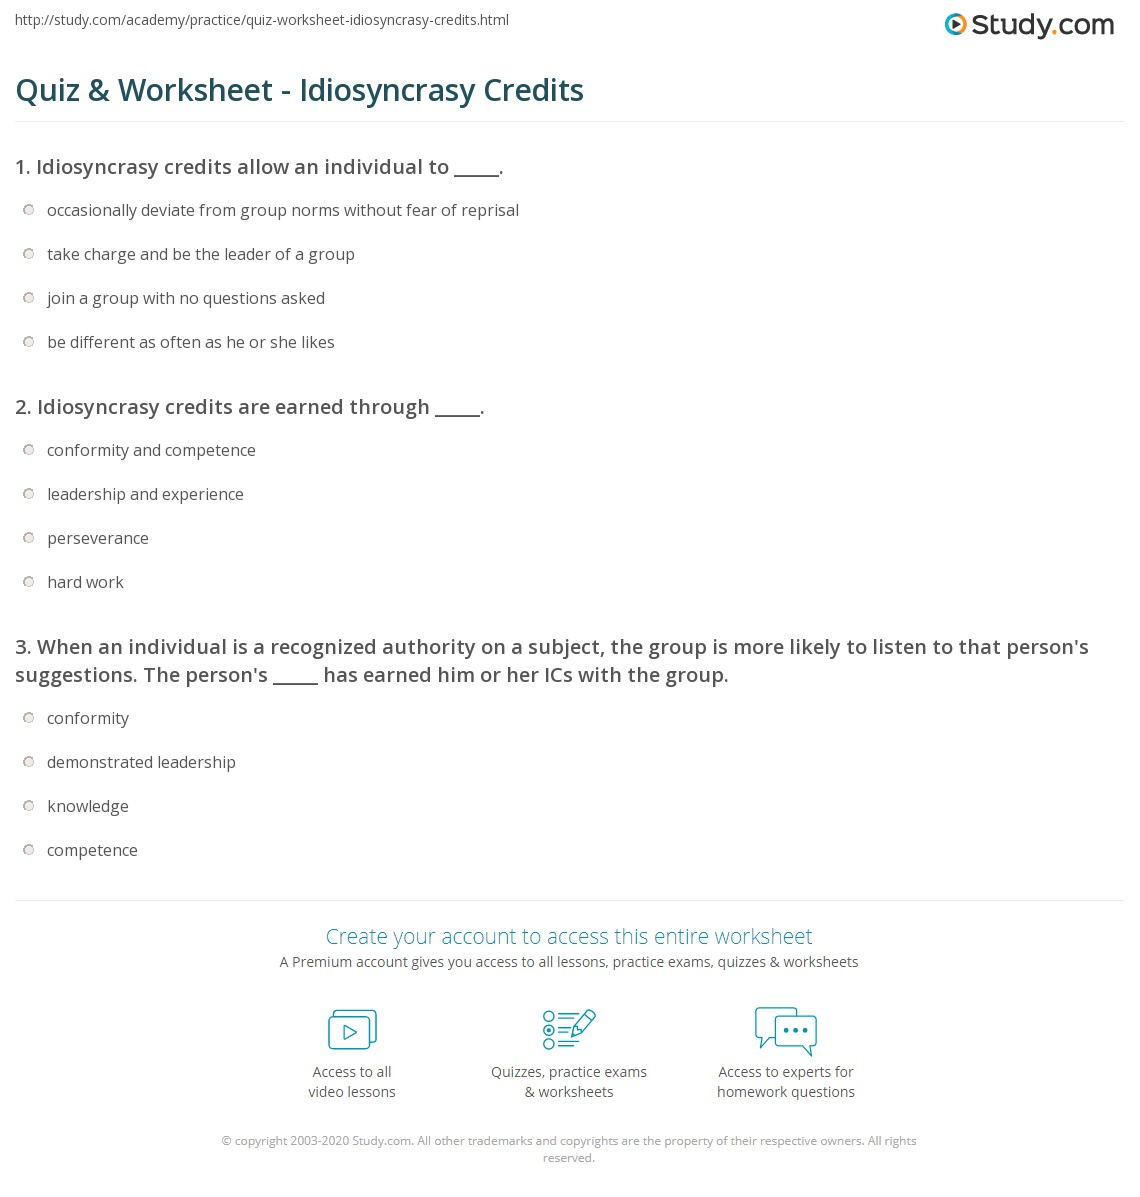 Idiosyncratic Examples: Quiz & Worksheet - Idiosyncrasy Credits